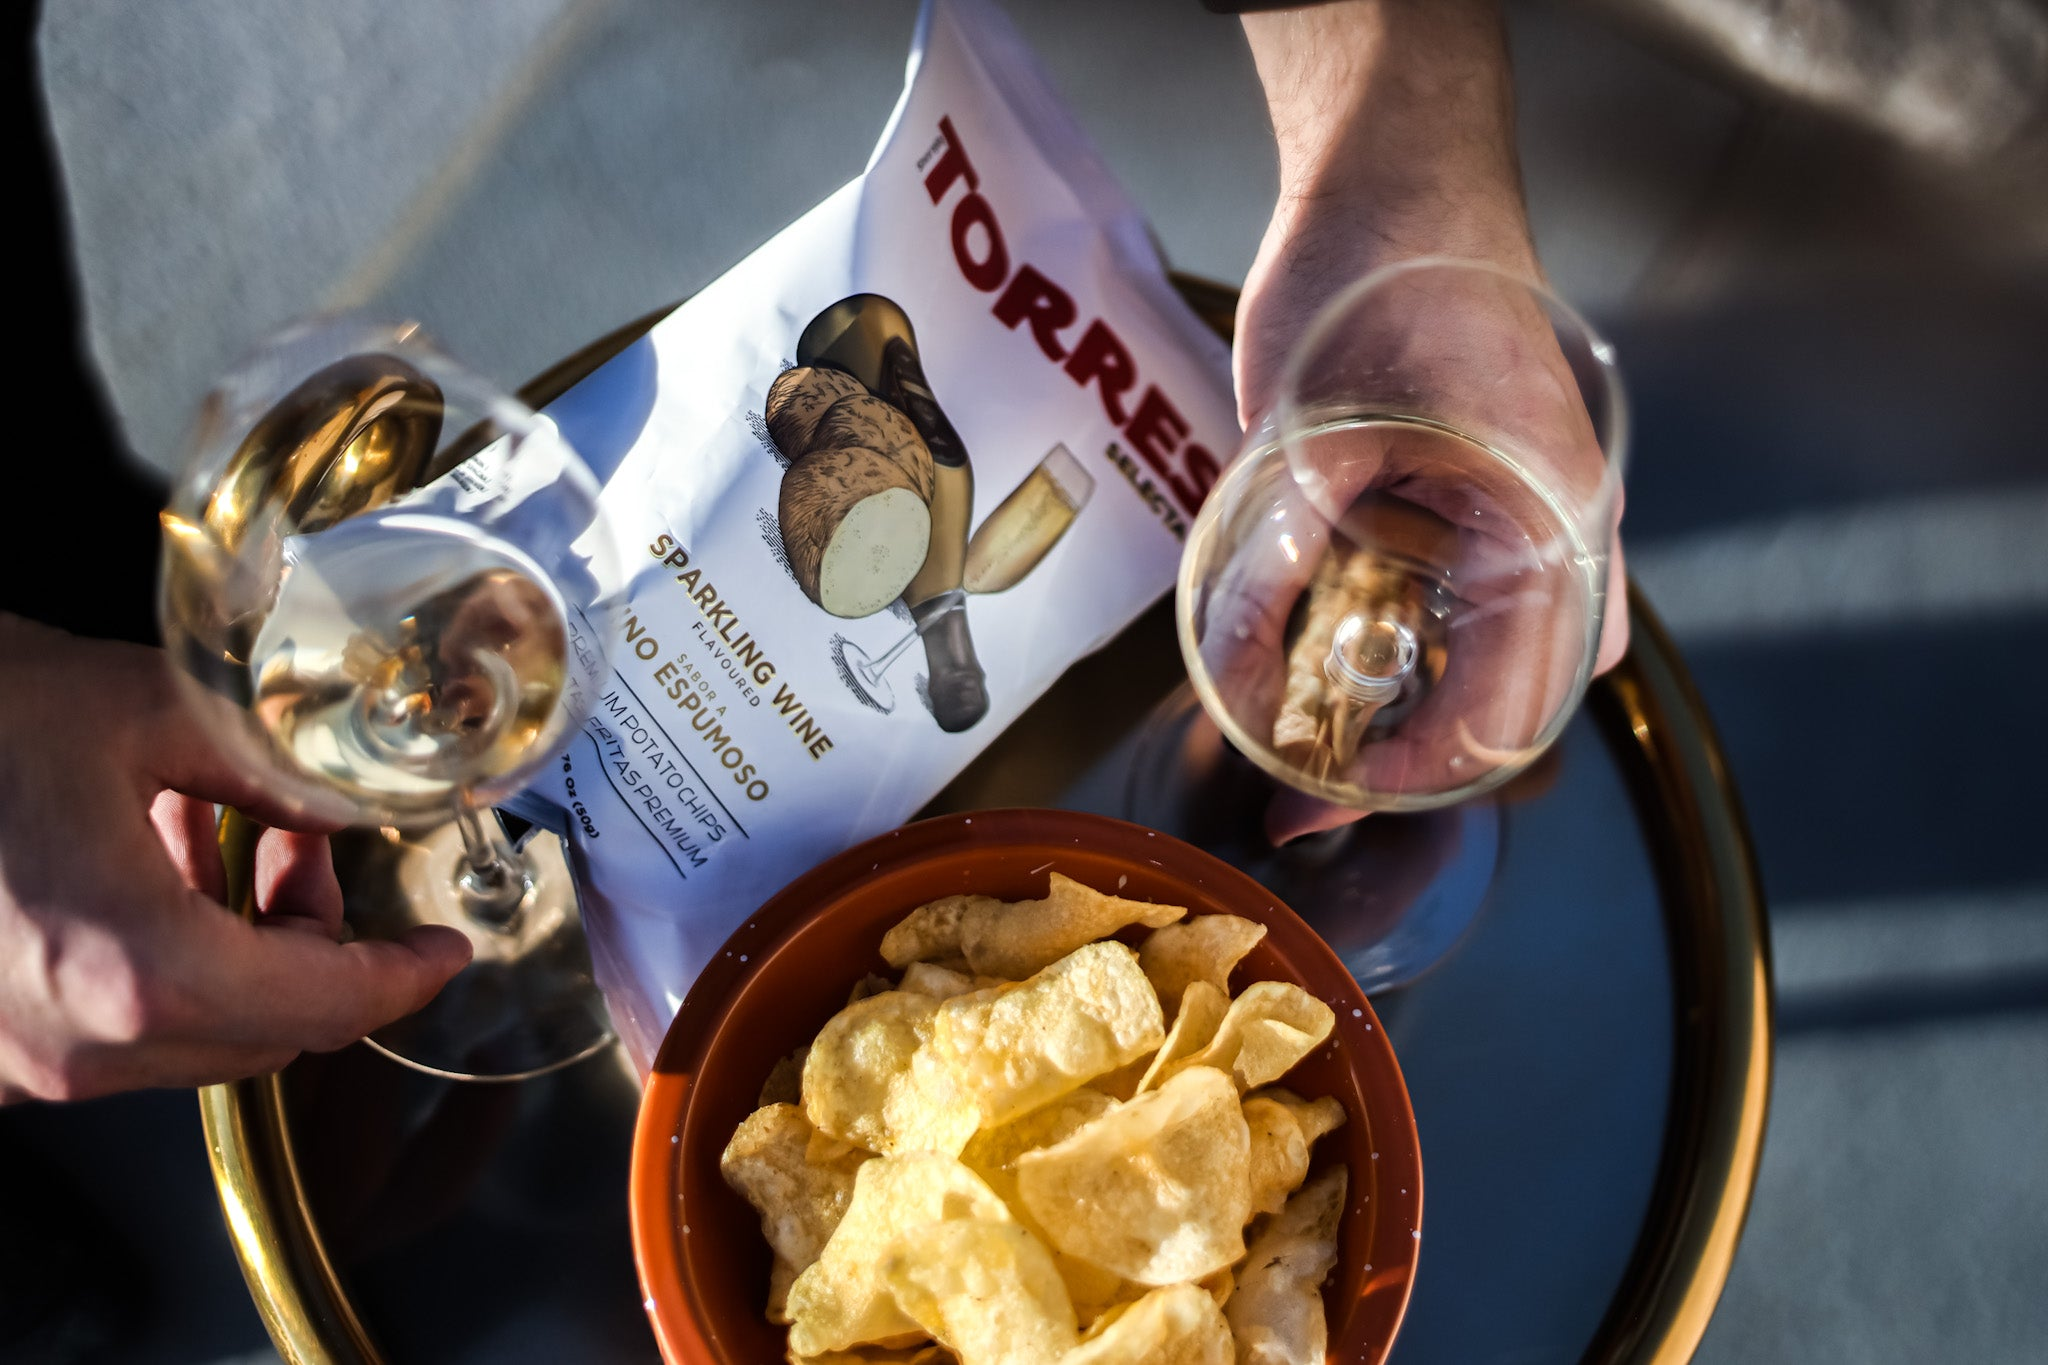 Wine and sparking wine chips